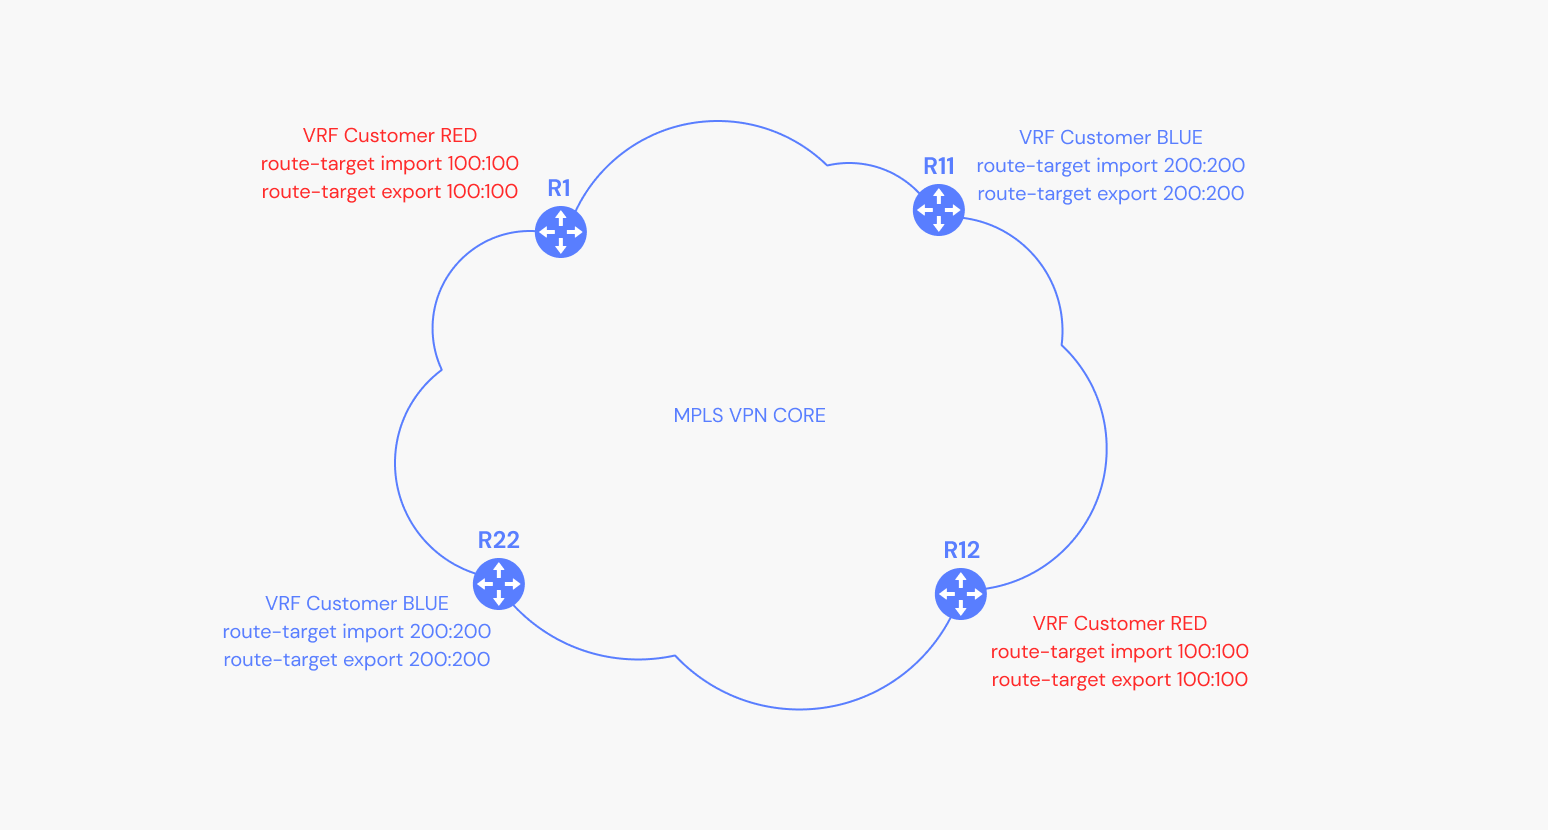 Depiction of a route target community in an MPLS VPN environment